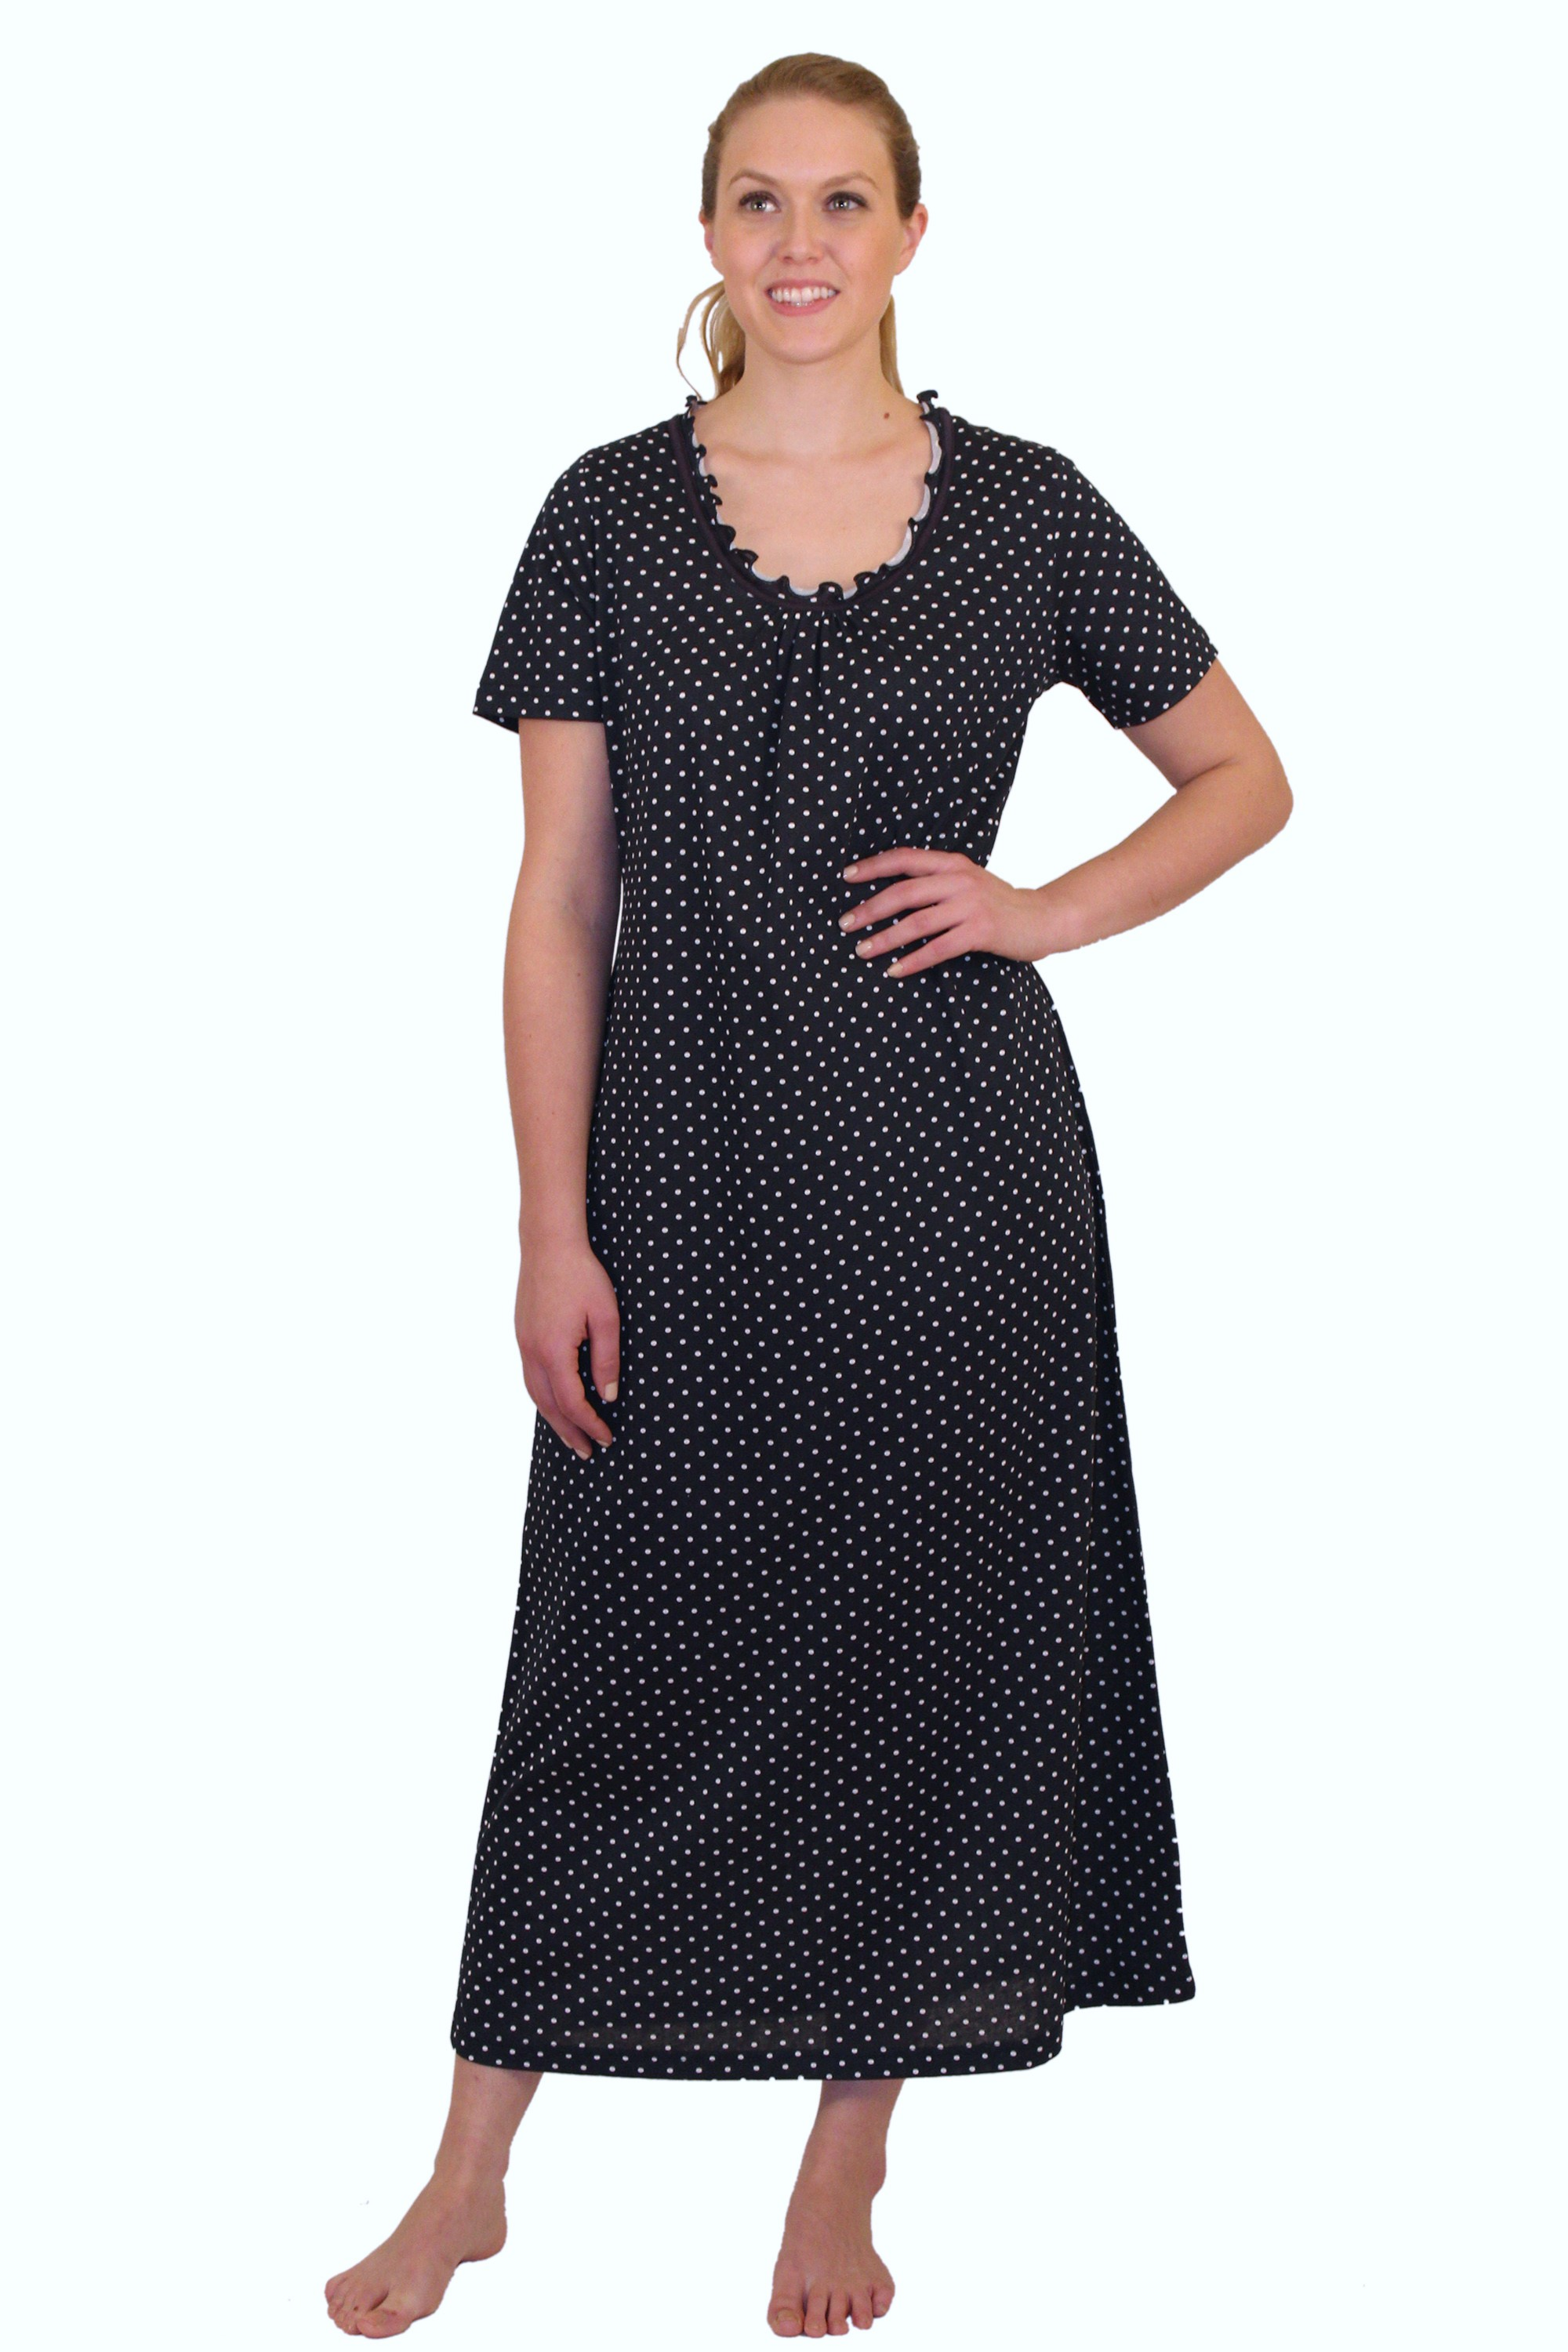 "ApparelNY Cotton Jersey Printed Night Shirt-Gown 52"" Length $15.99 Colors: Floral Polkadots Solid. Sizes:  XS S M L XL ... ApparelNY Stylish Night Gown 52� length. Cotton blend. This stylish night gown is perfect outfit for"